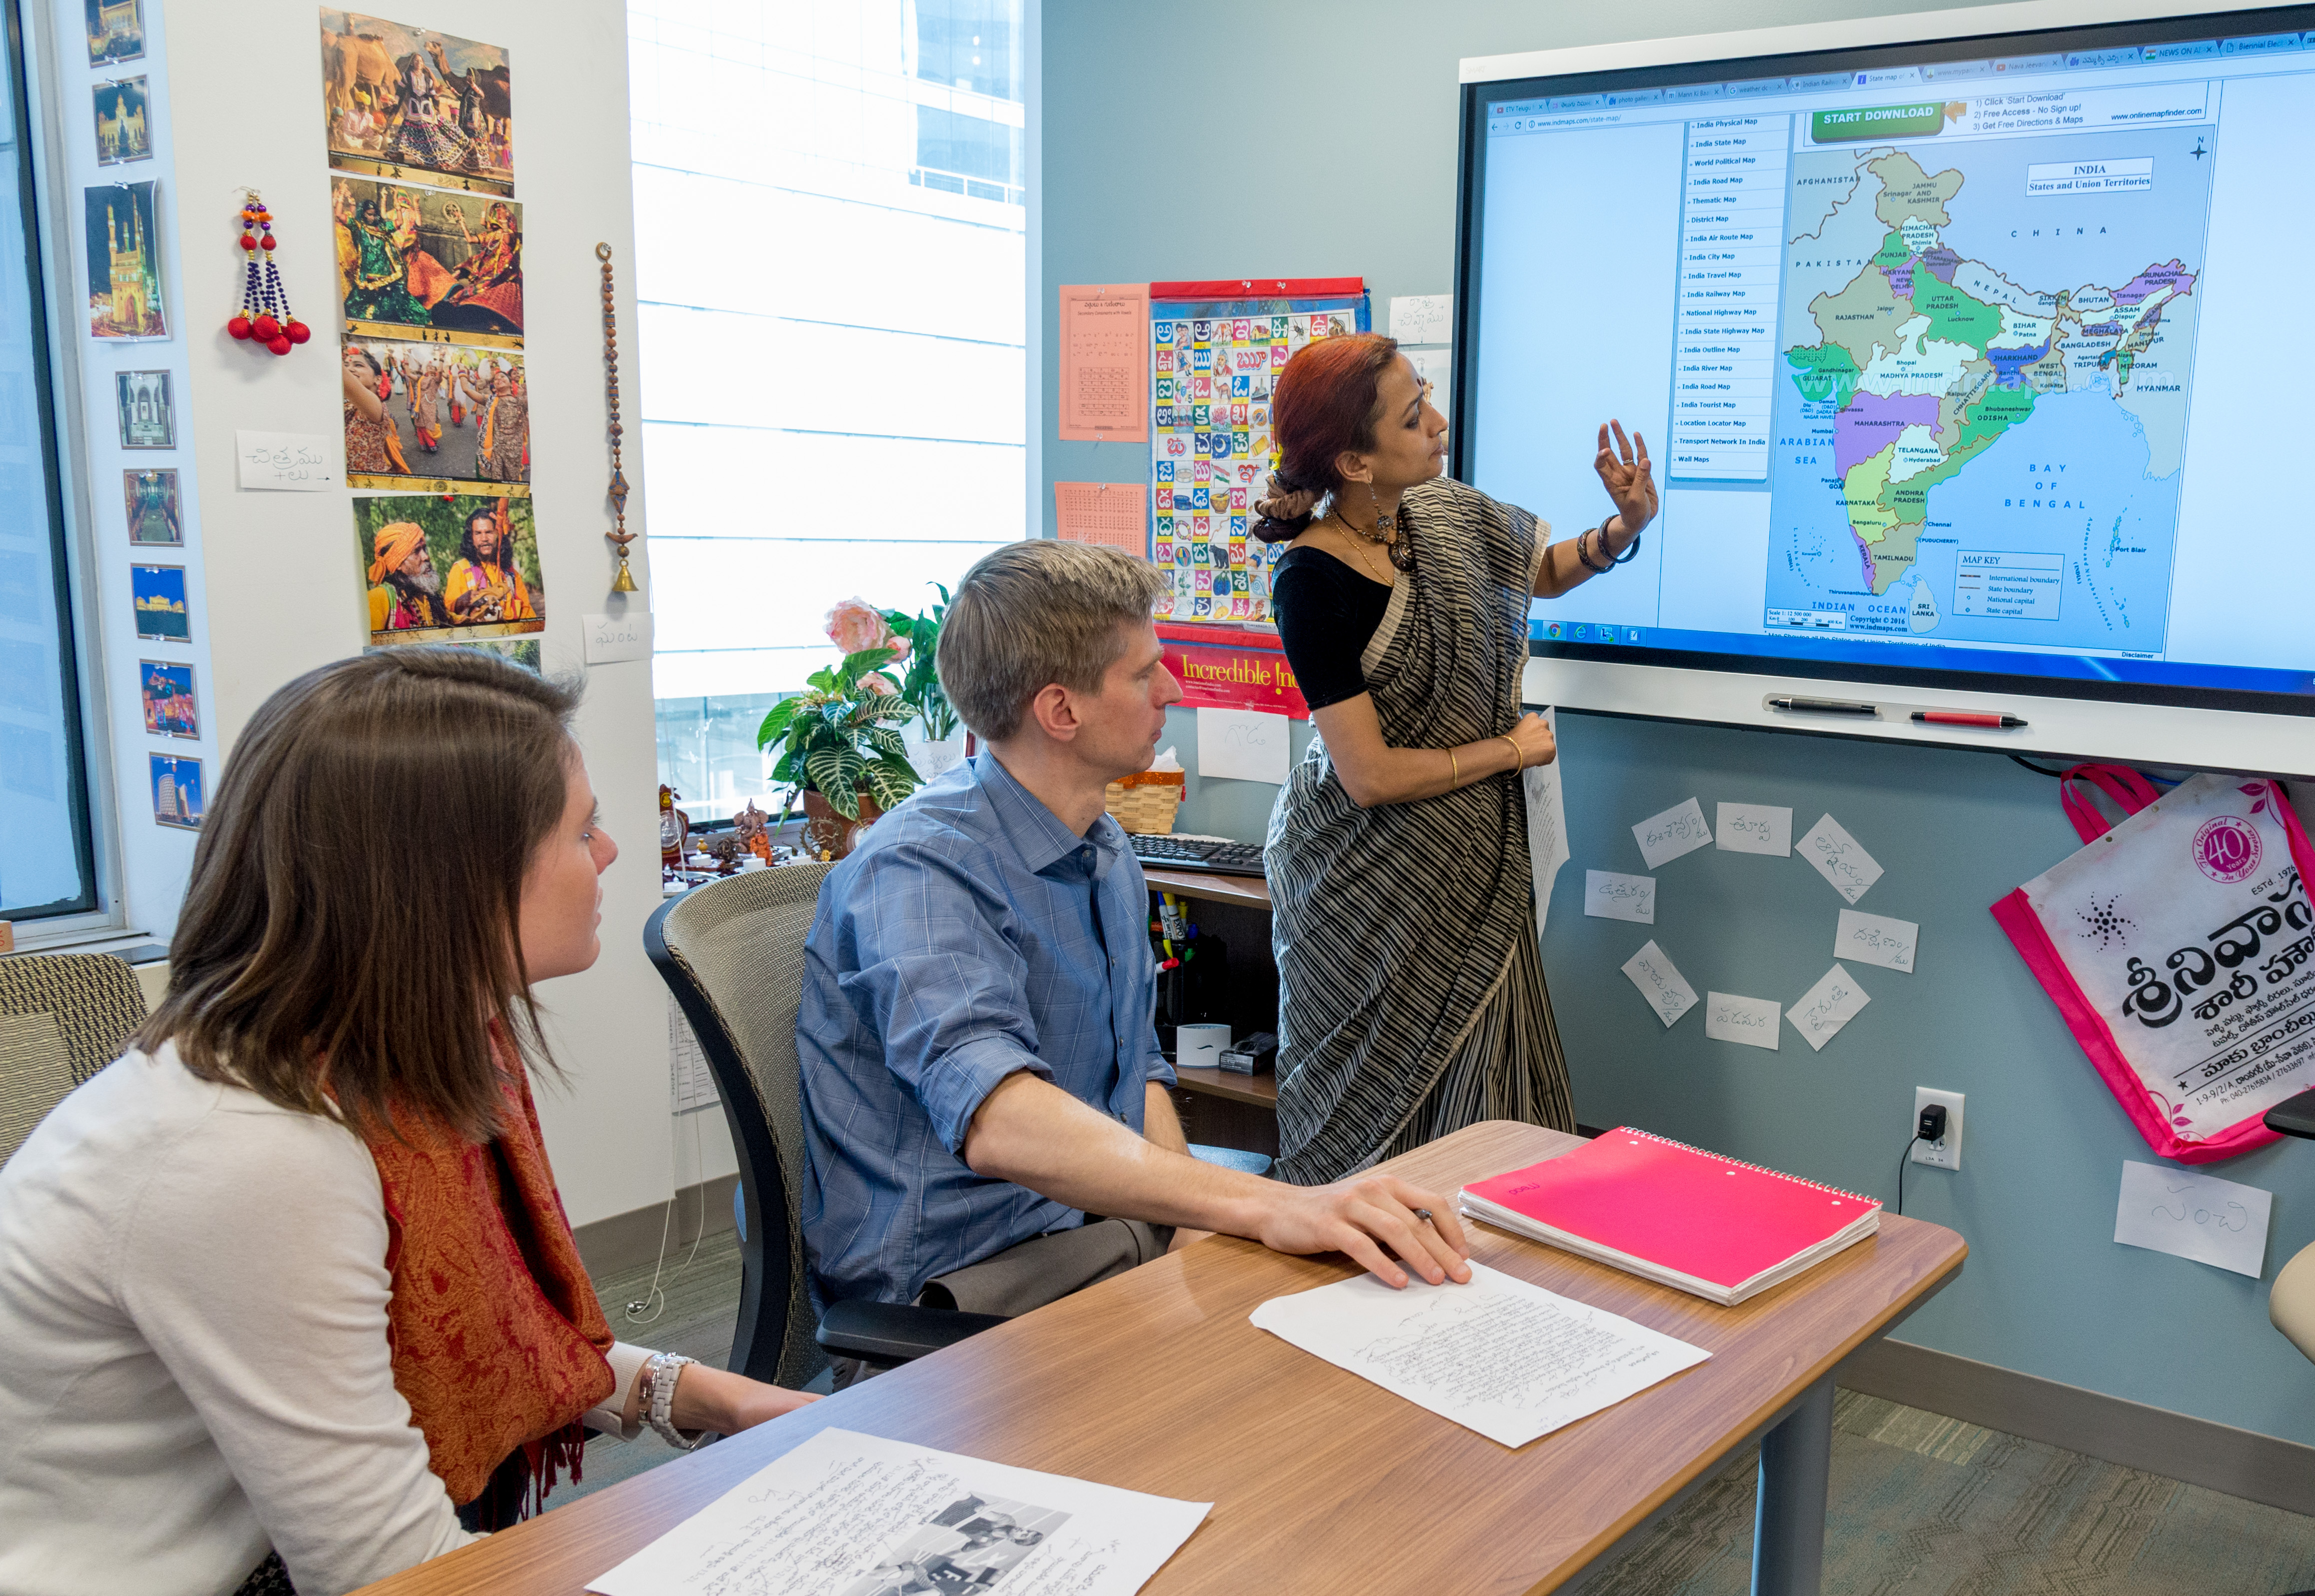 FSI students studying in a foreign language classroom. The instructor is motioning to the electronic screen.